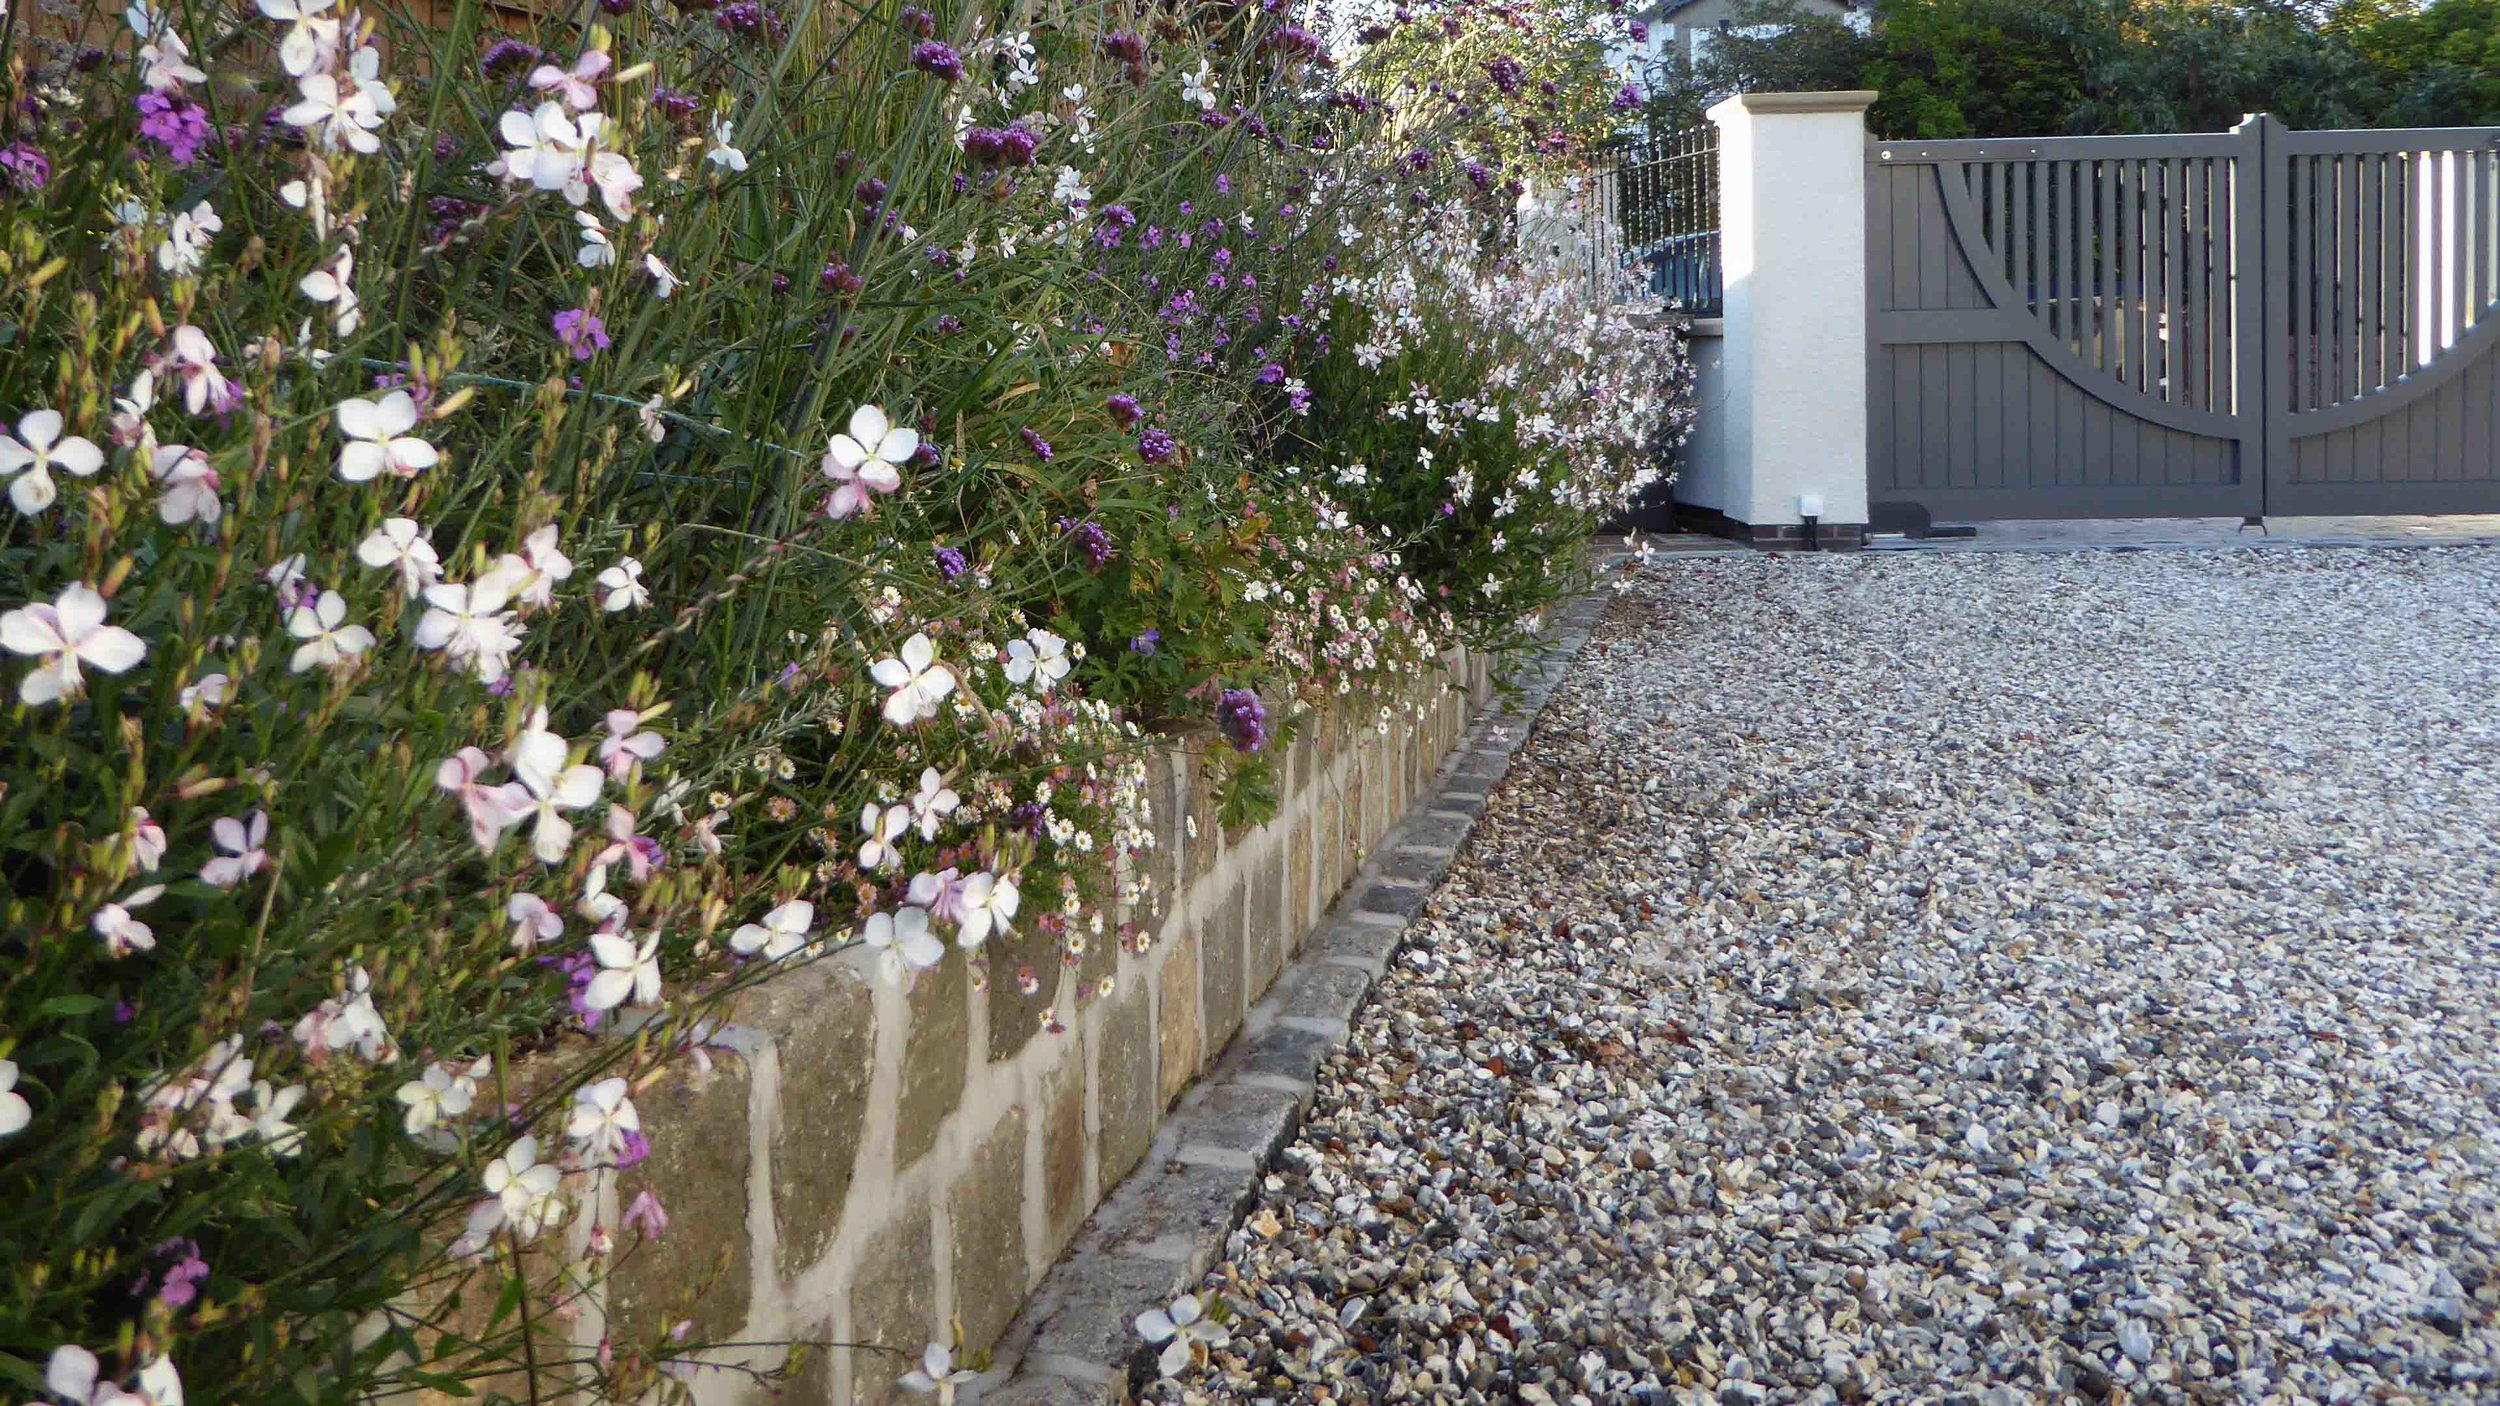 Cheshire Garden Design: The Sun and Shade Garden: Gaura In Raised Bed Next To Drive